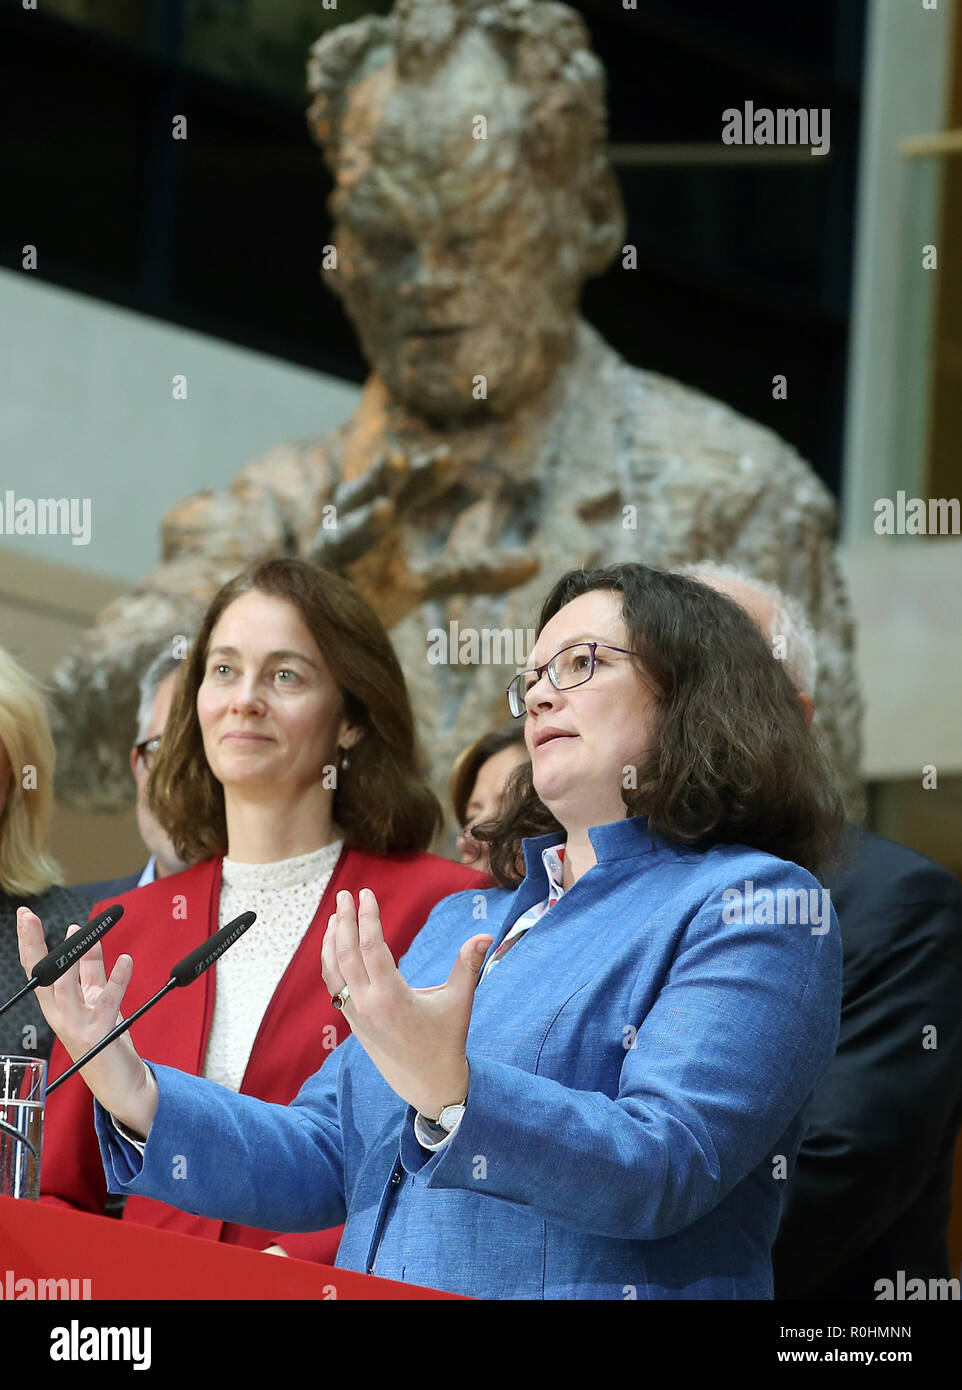 Berlin, Germany. 05th Nov, 2018. Andrea Nahles (r), chairwoman of the SPD, made a statement in the presence of the members of the executive committee after the meeting of the SPD executive committee at a press conference in the Willy Brandt House at the end of the closed conference of the SPD. Left: Katarina Barley, Federal Minister of Justice. Credit: Wolfgang Kumm/dpa/Alamy Live News - Stock Image